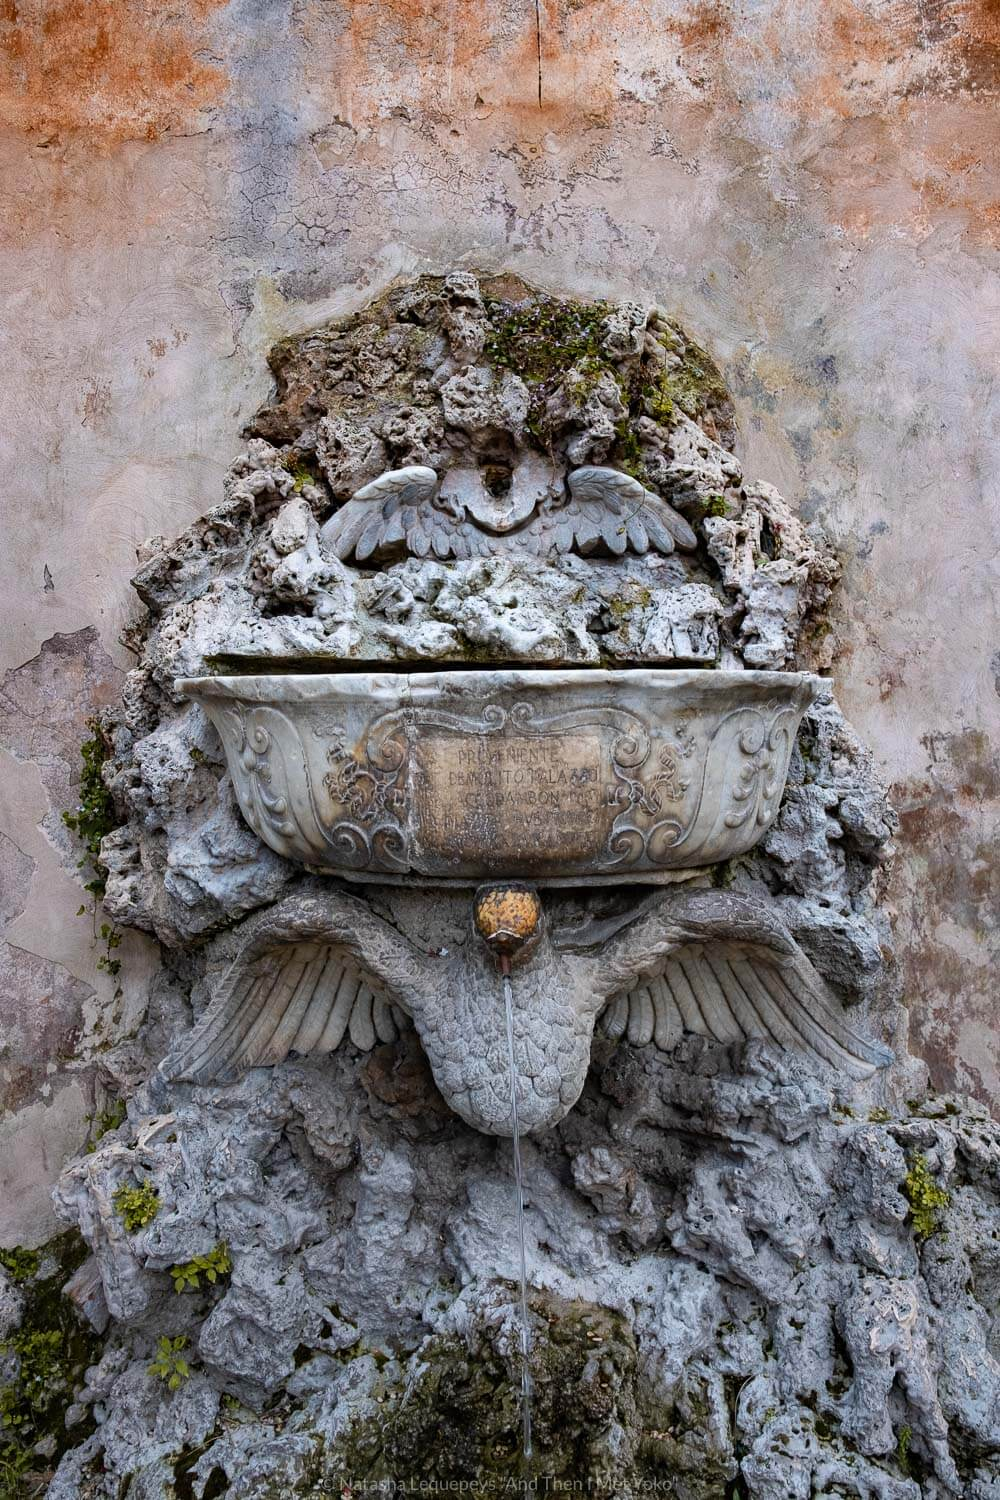 """Water fountain in the Orange Garden in Rome, Italy. Travel photography and guide by © Natasha Lequepeys for """"And Then I Met Yoko"""". #rome #italy #travelblog #travelphotography"""